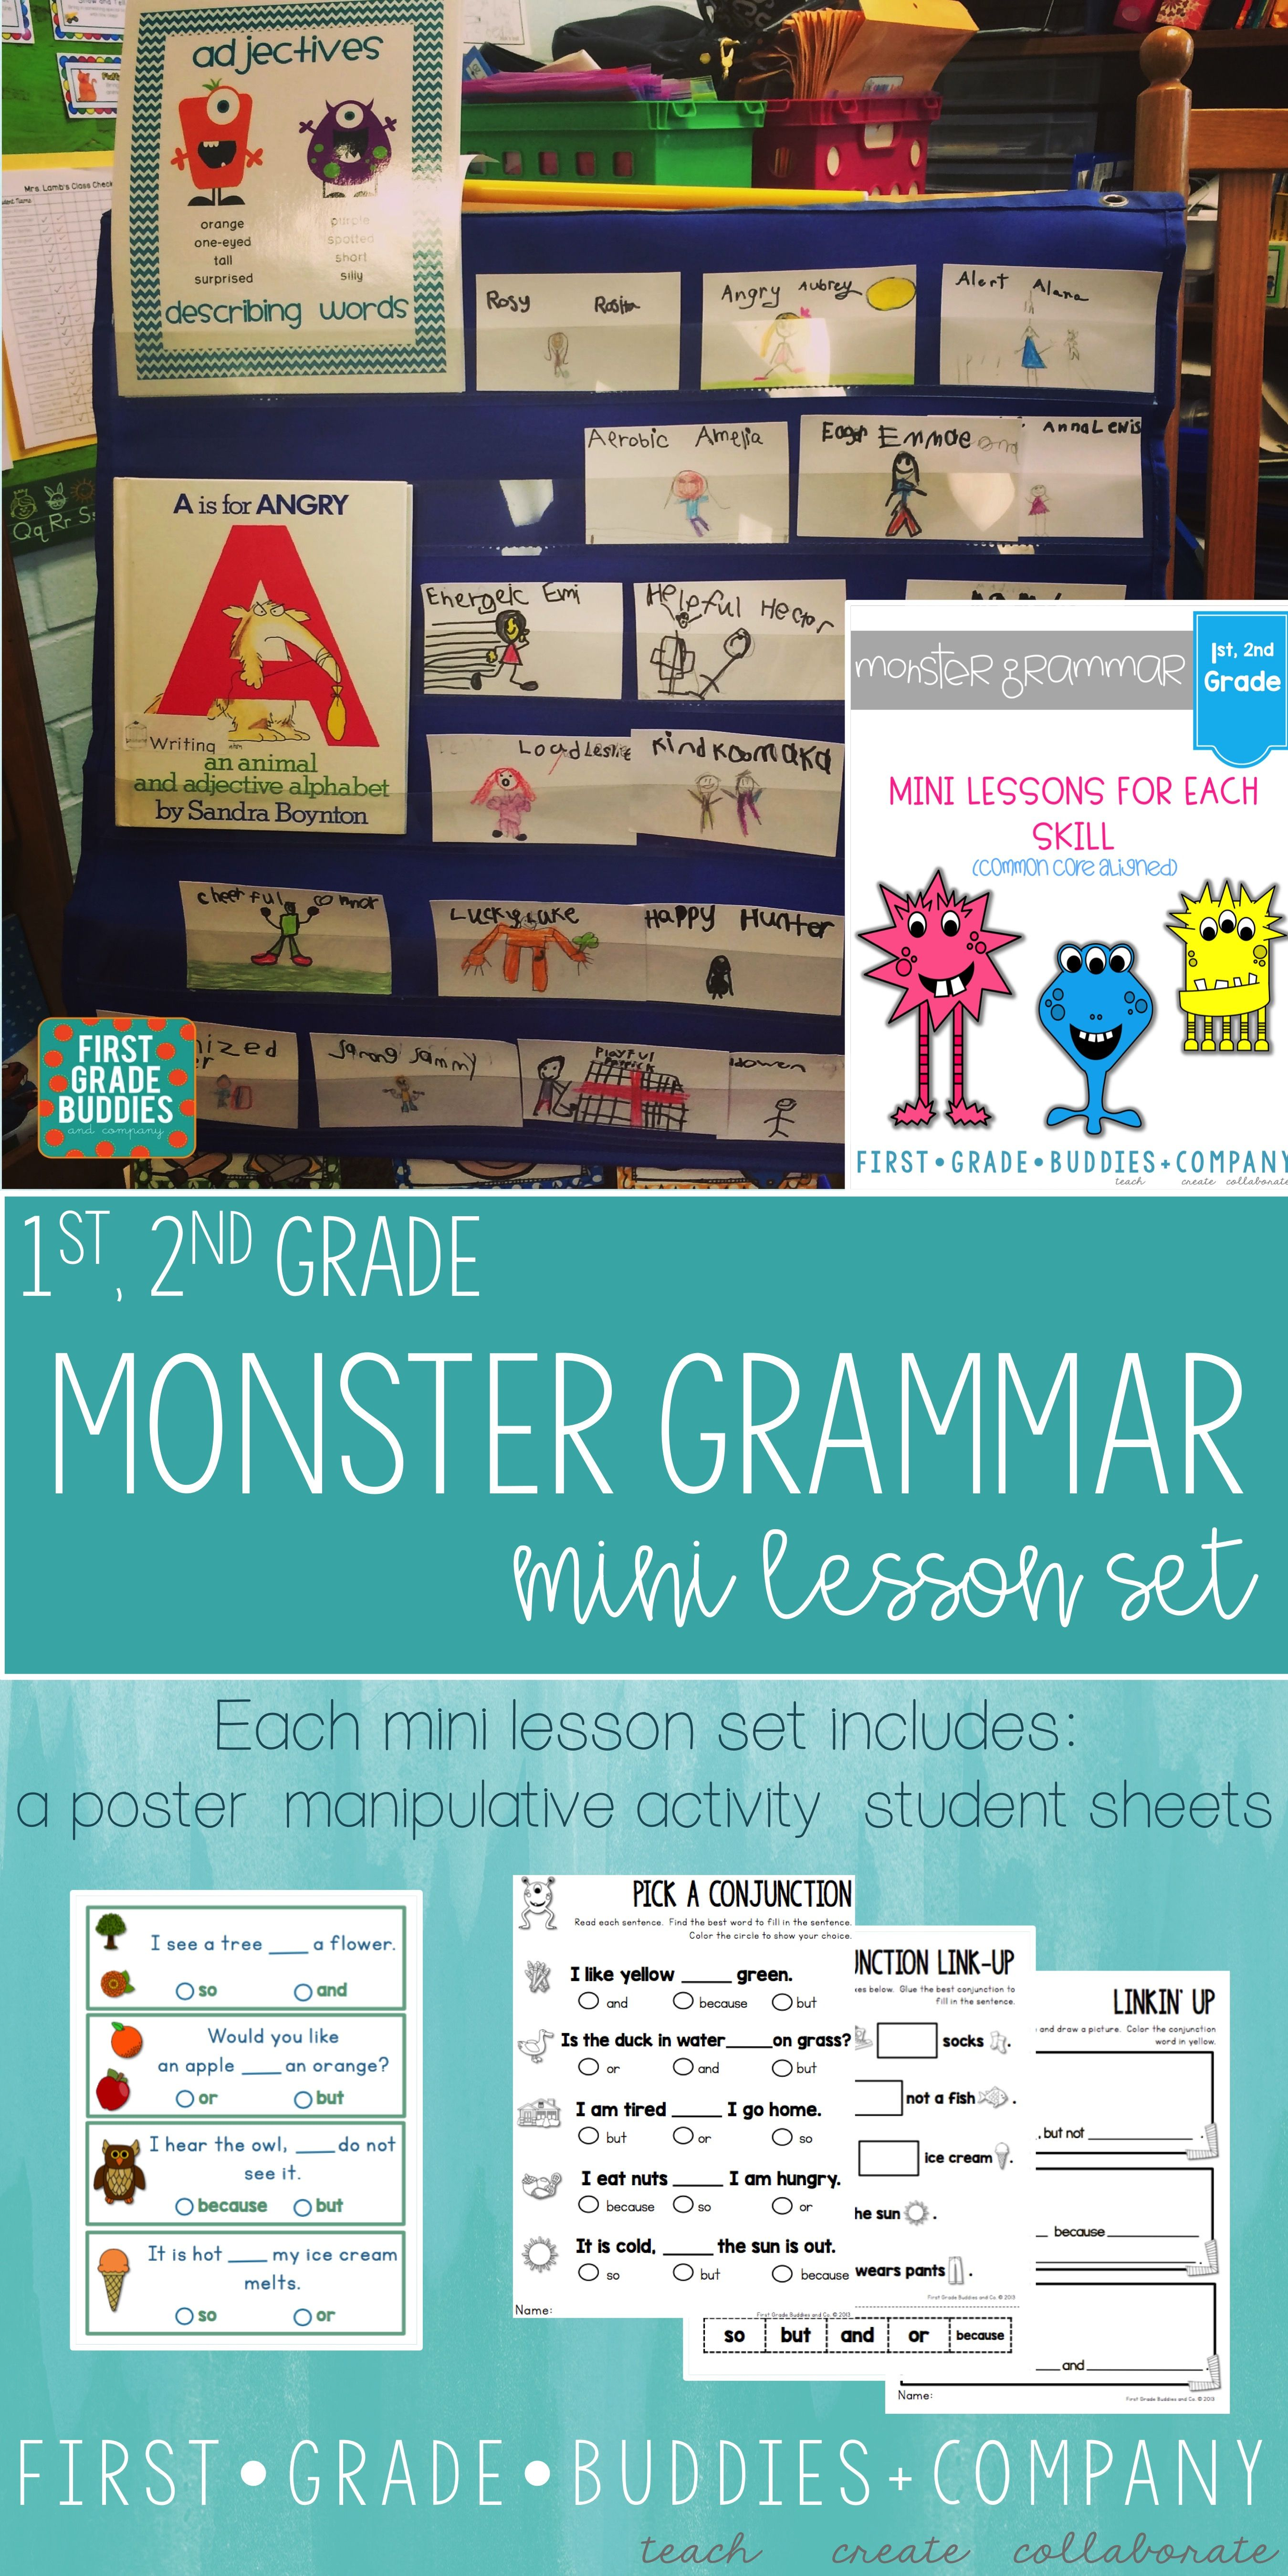 Your 1st And 2nd Grade Students Are Going To Love These